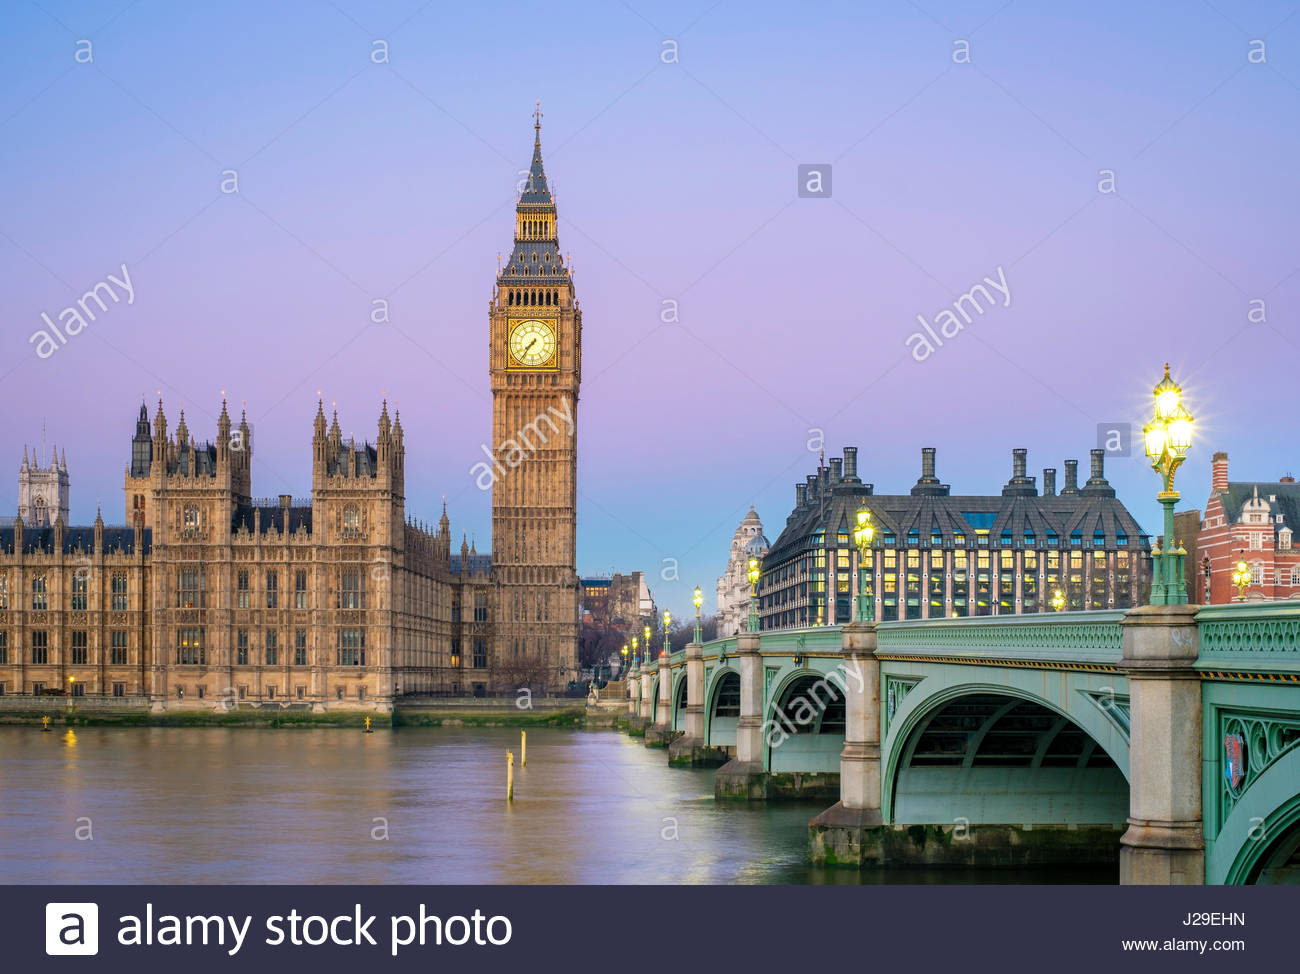 United Kingdom, England, London. Westminster Bridge, Palace of Westminster and the clock tower of Big Ben (Elizabeth Tower), at dawn. Stock Photo